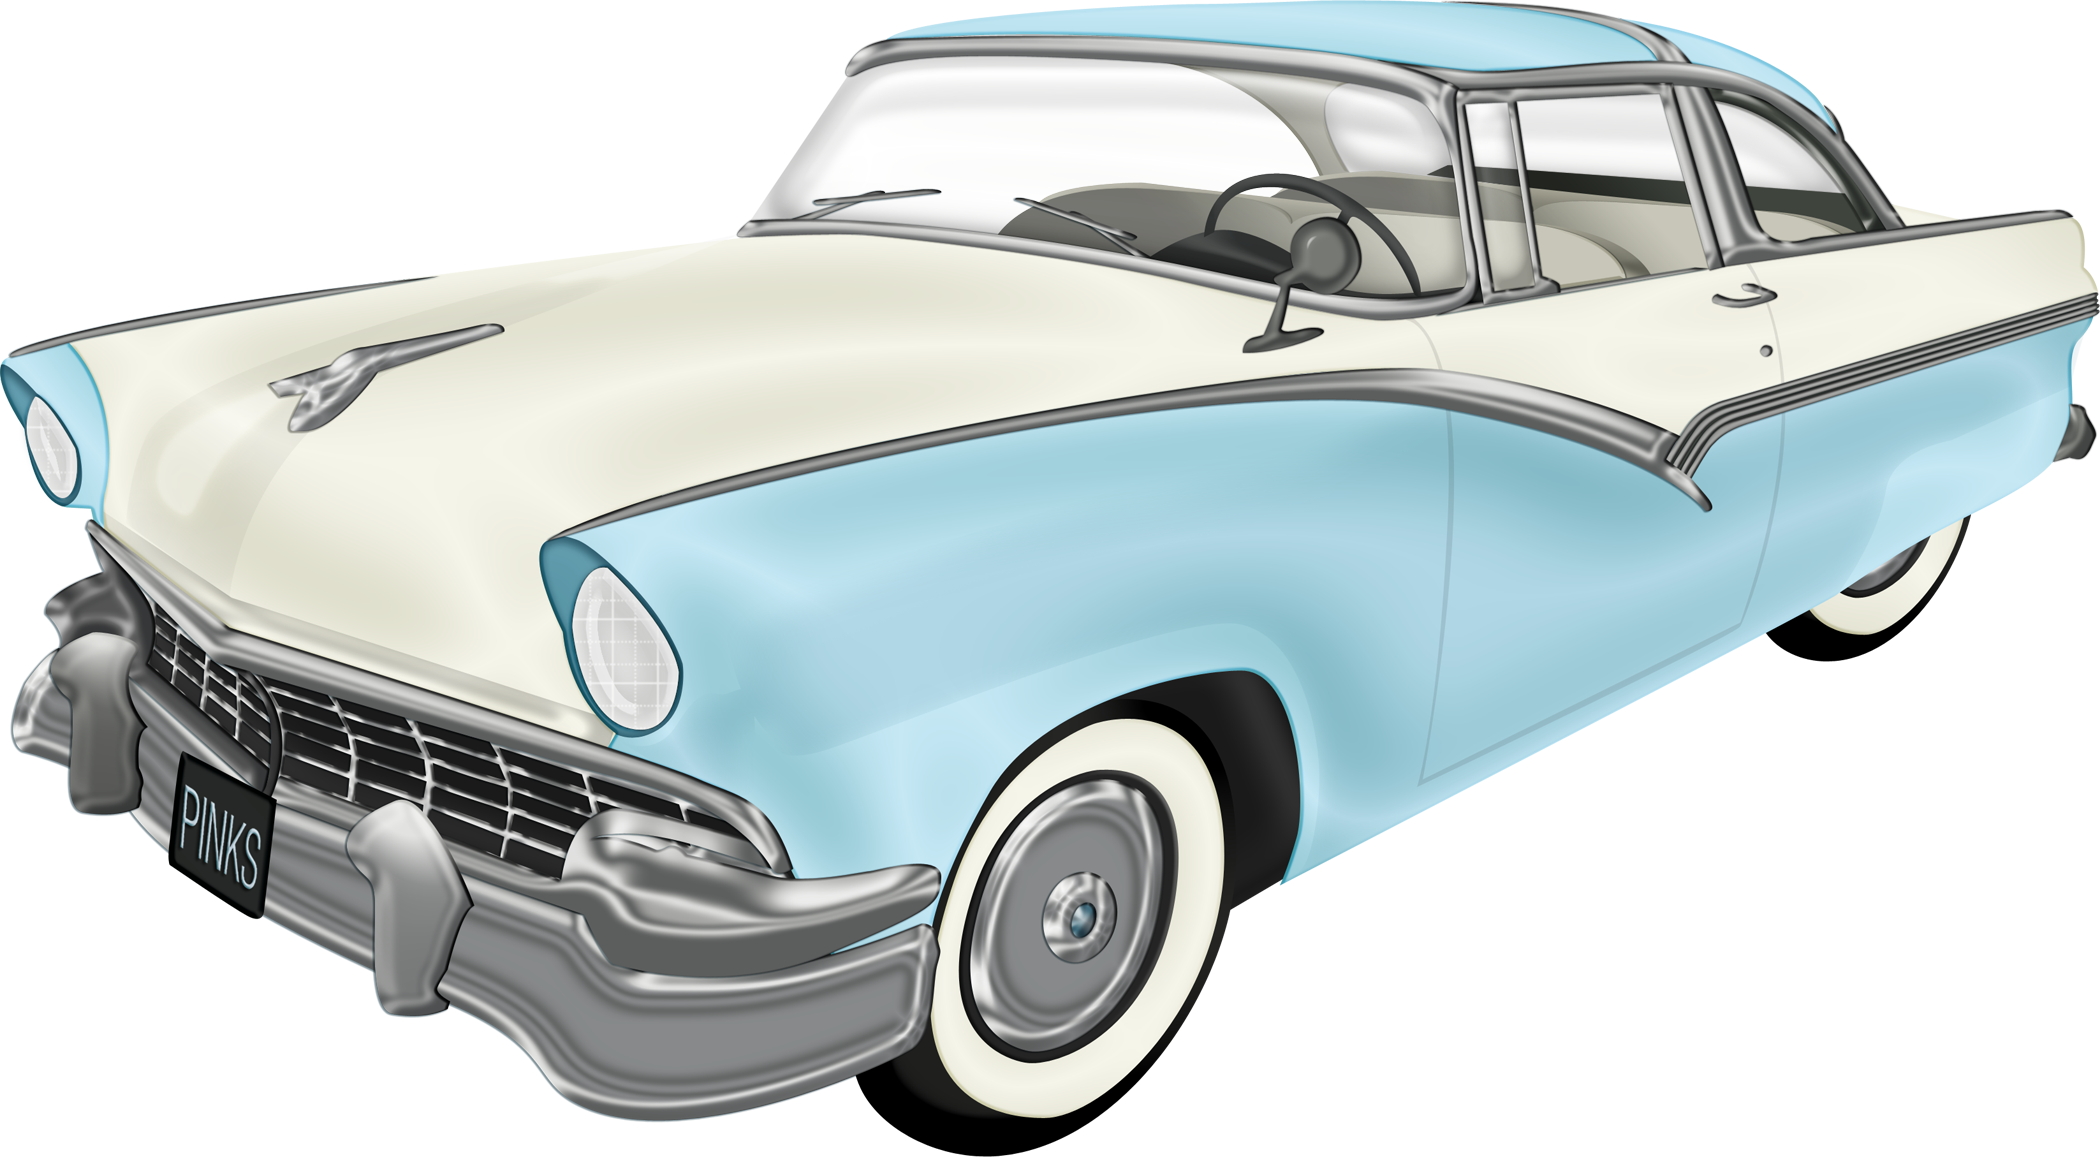 Old fashioned car clipart image library stock Pin by Mobile Mechanic Houston on Muscle Cars | Pinterest | Cars image library stock